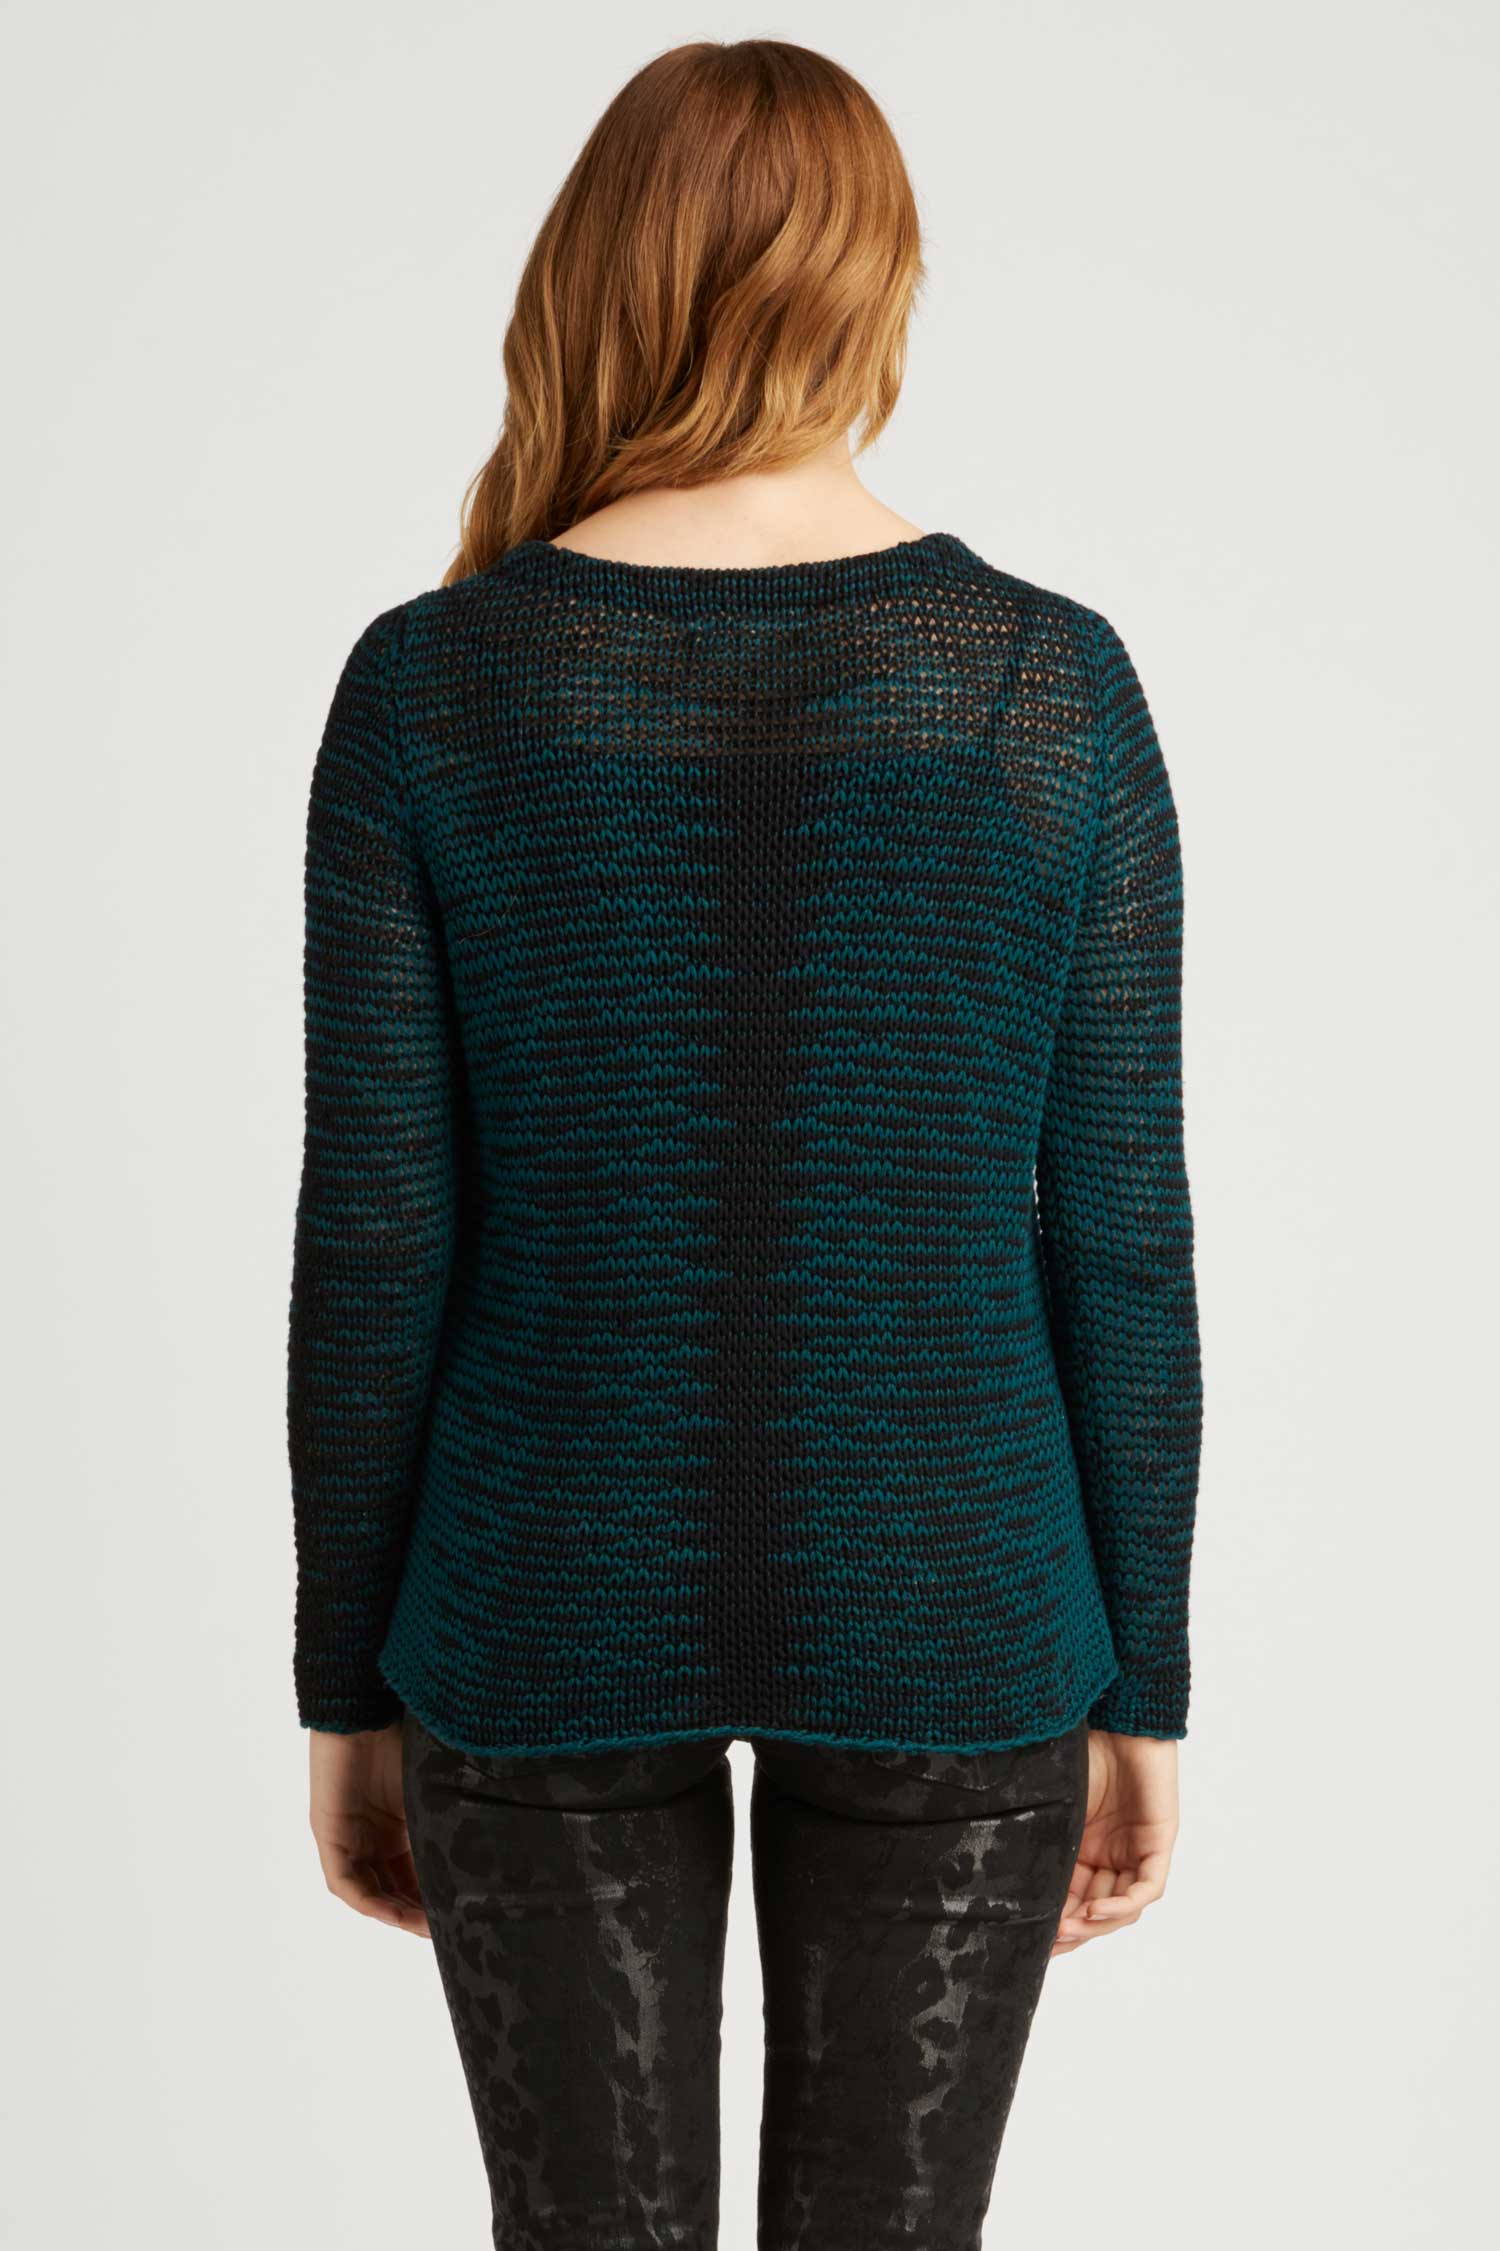 Womens Eco Friendly Knit Sweater | Organic + Fair Trade Clothing